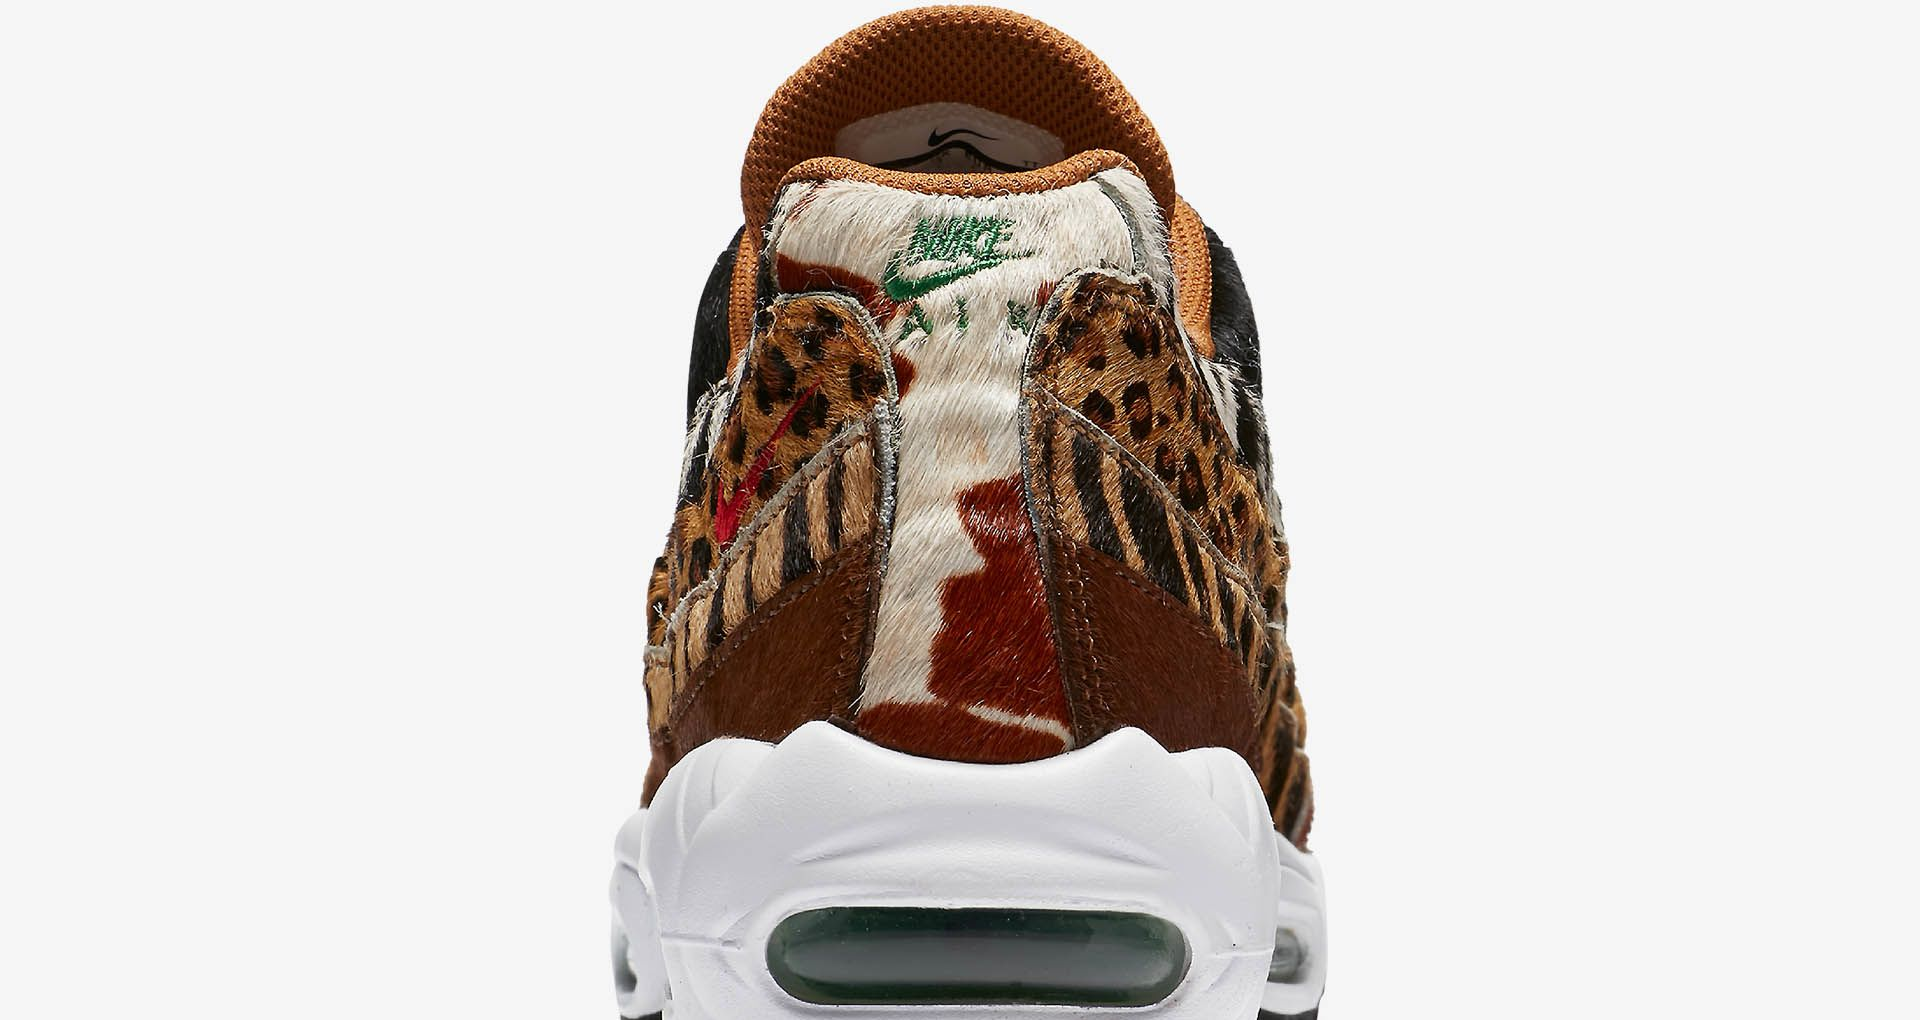 Unleash Your Wild Side with the Nike Air Force 1 'Animal